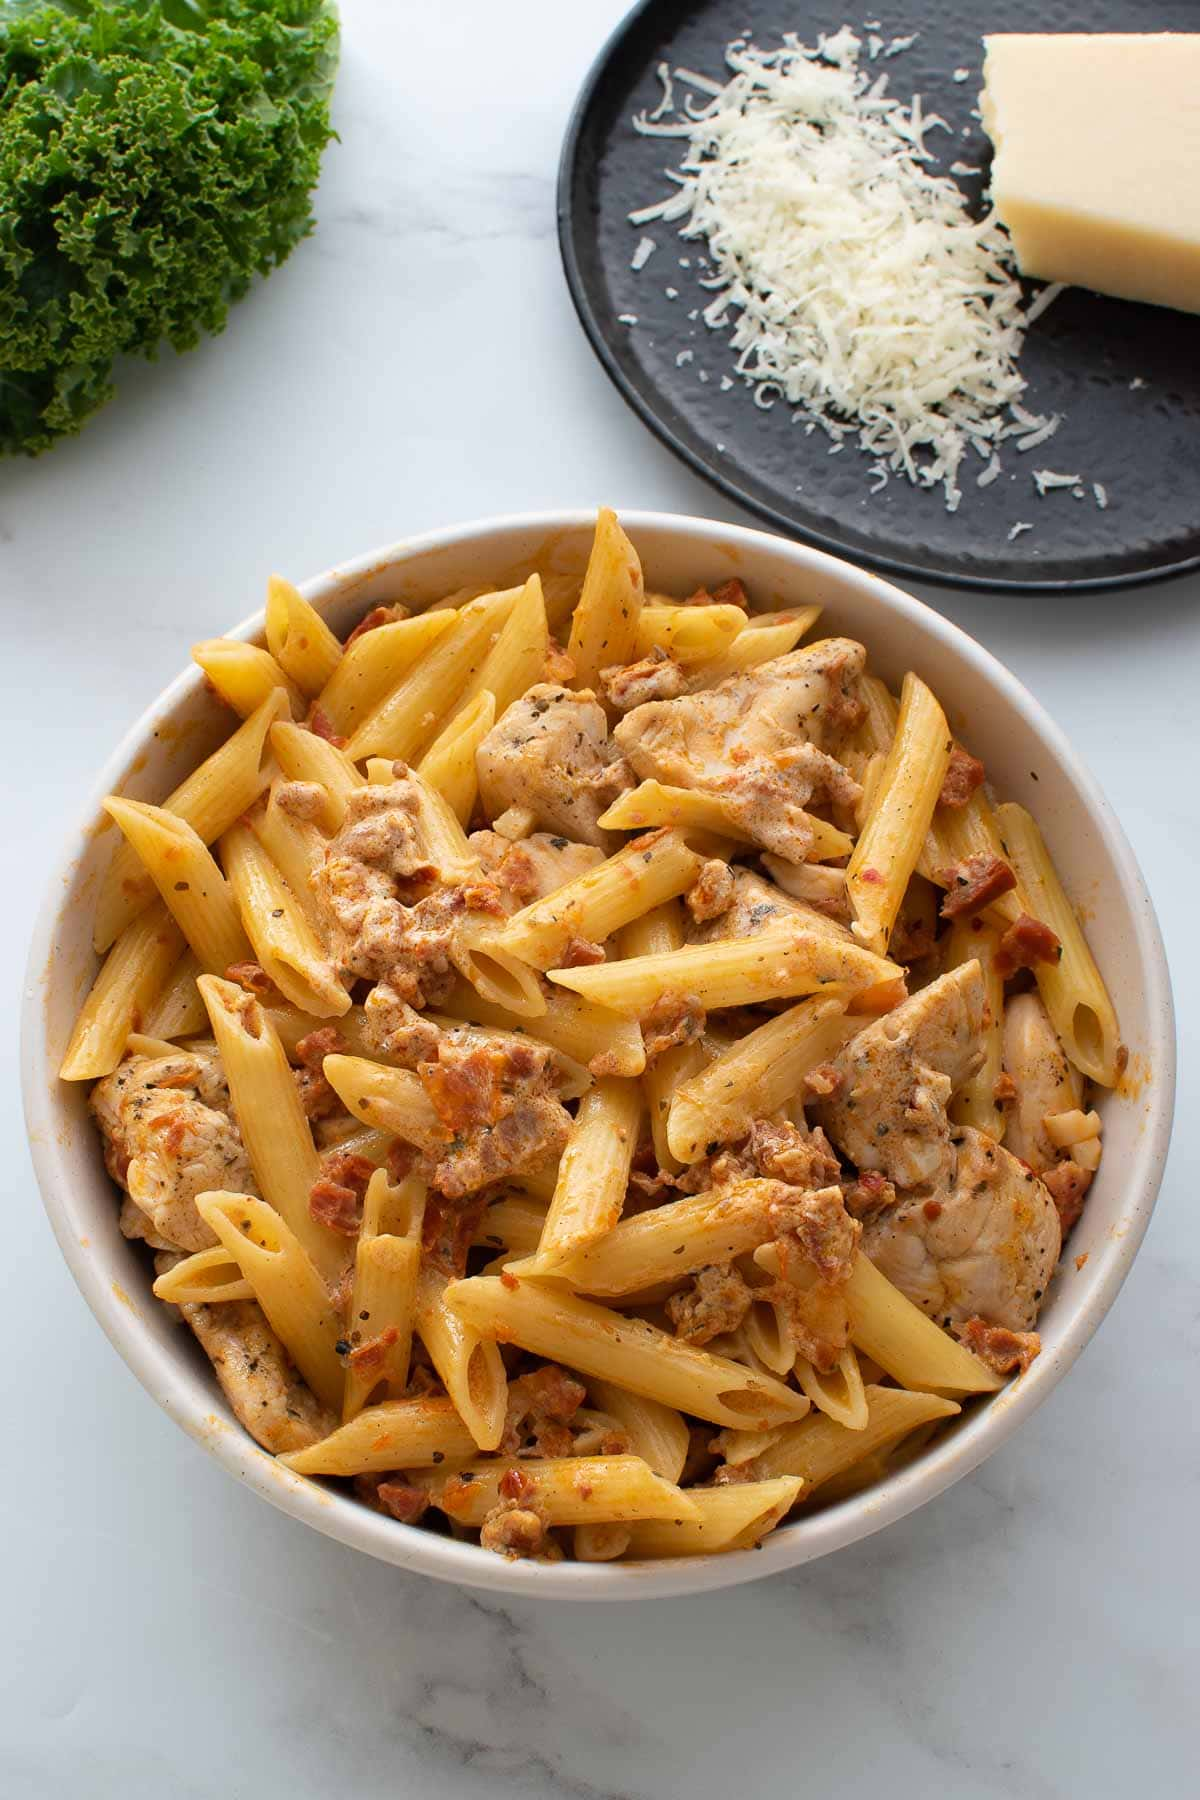 Close up of a bowl of pasta with chicken and chorizo.